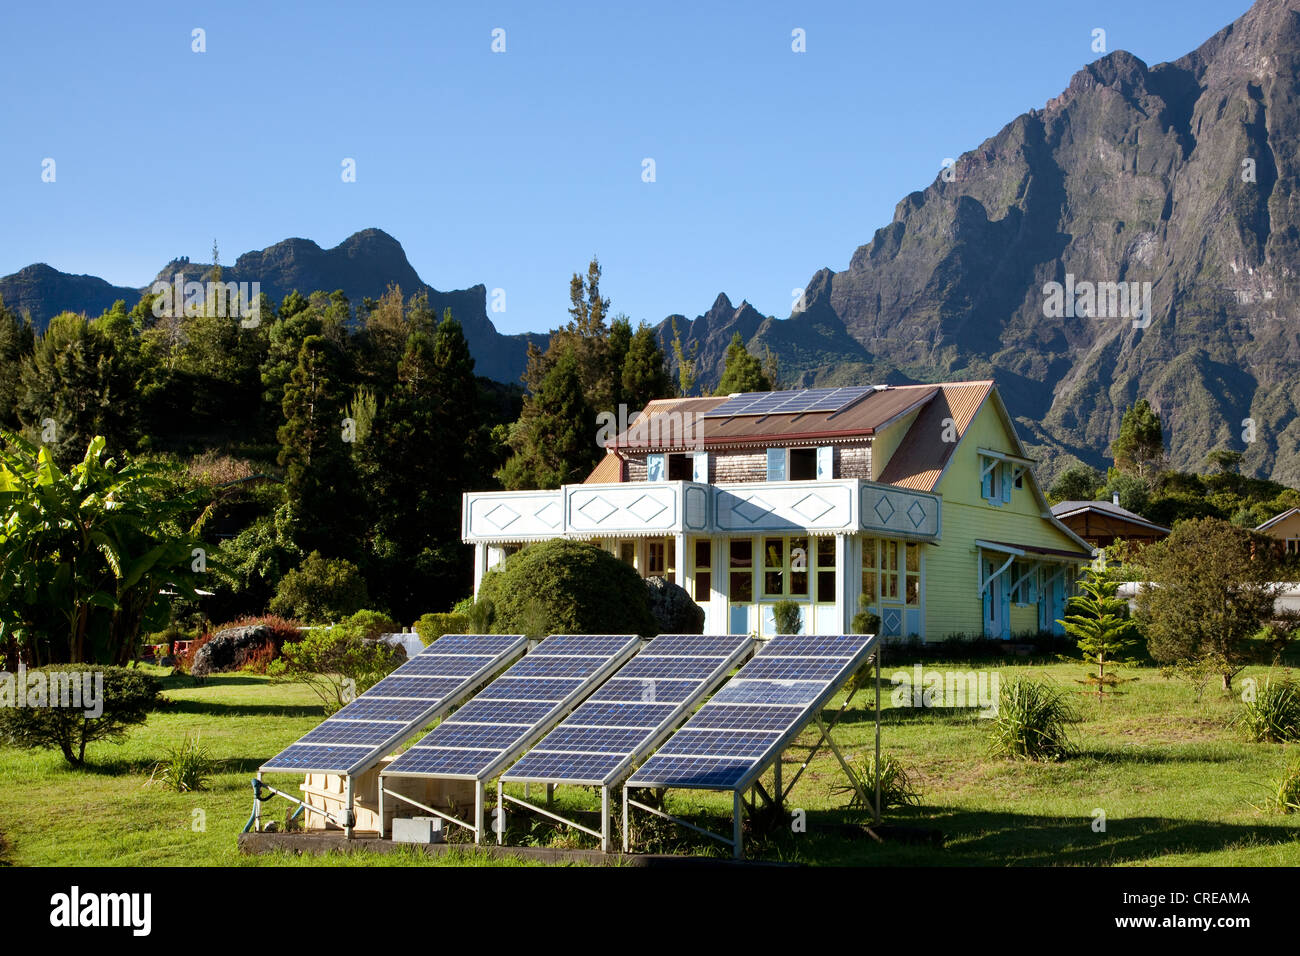 Mountain cottage with solar panels, photovoltaics, remote and hard to reach mountain village of La Nouvelle - Stock Image